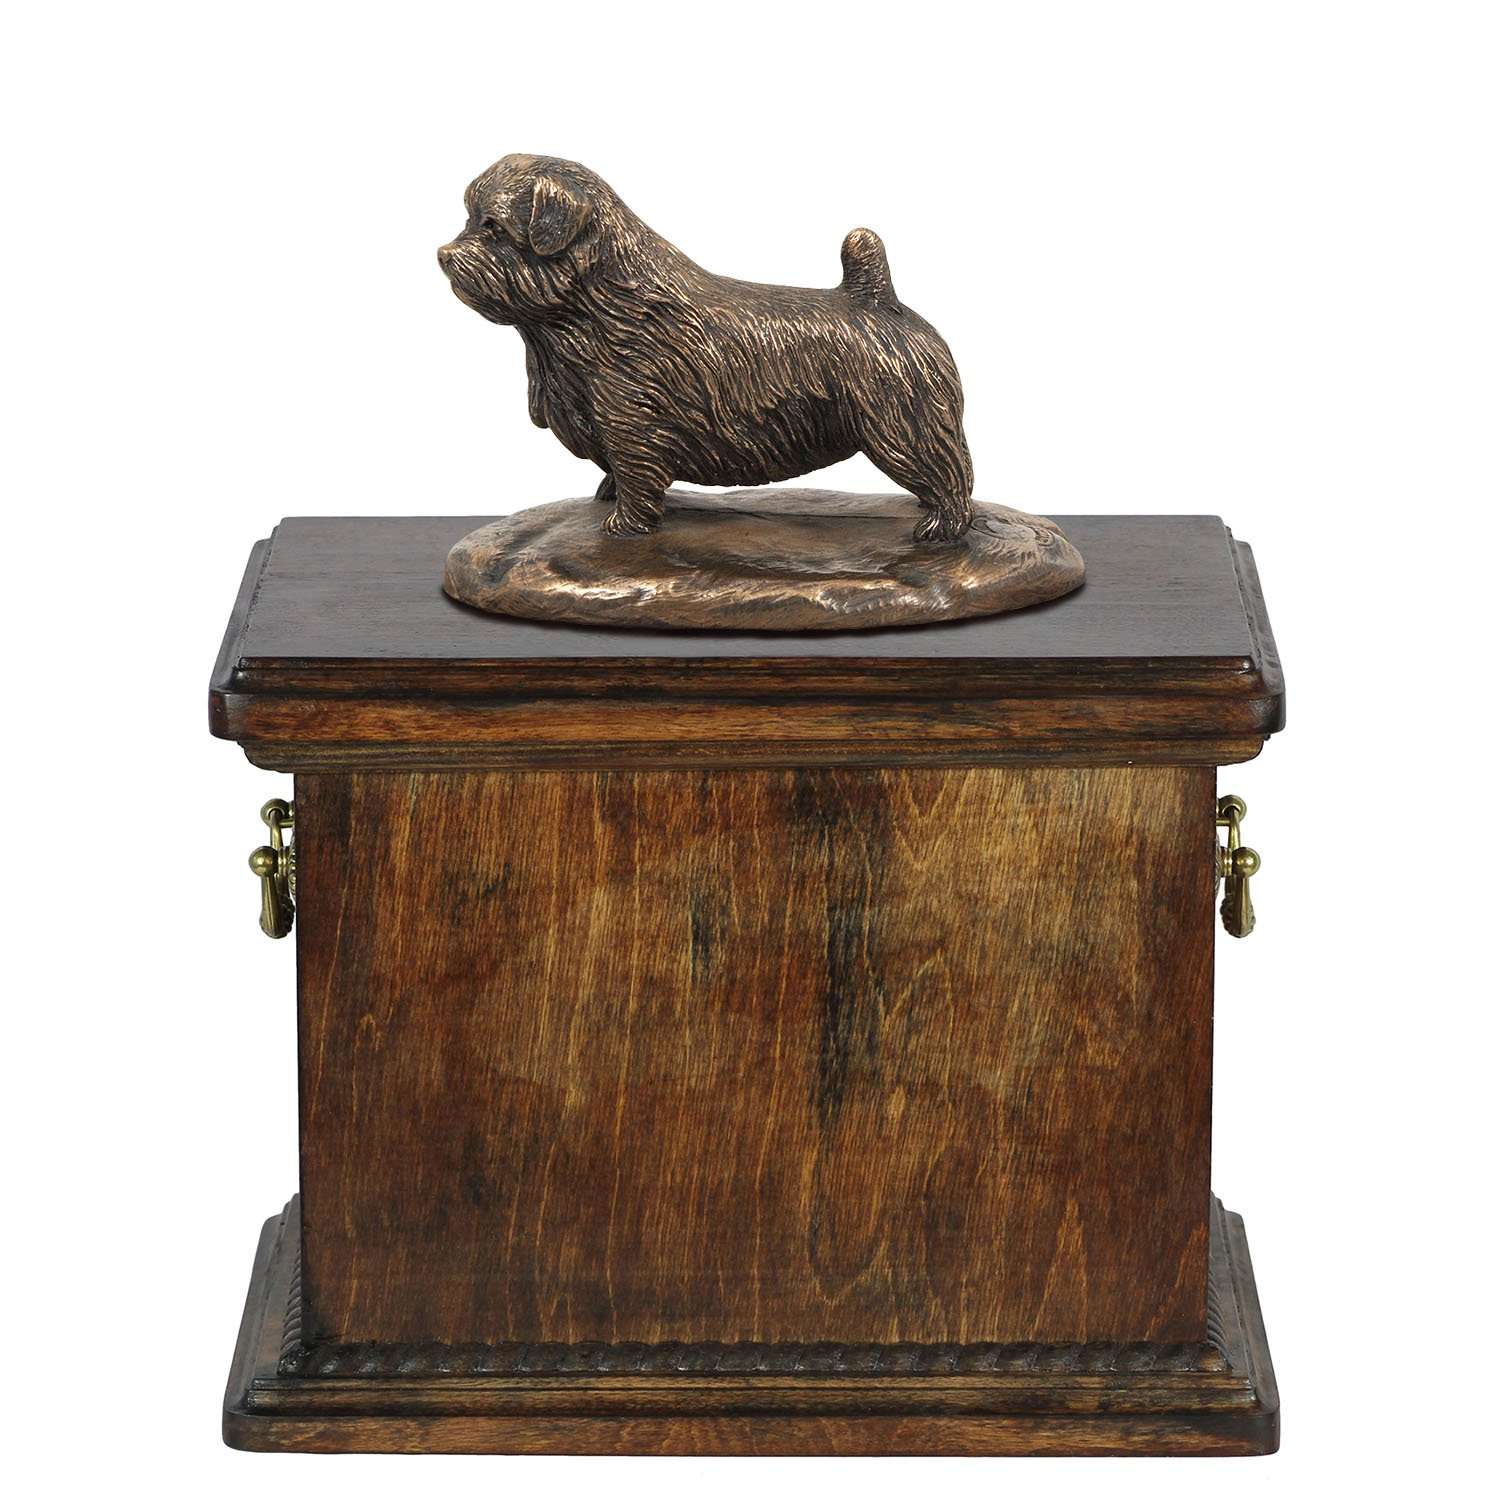 Norfolk Terrier, memorial, urn for dog's ashes, with dog statue, ArtDog